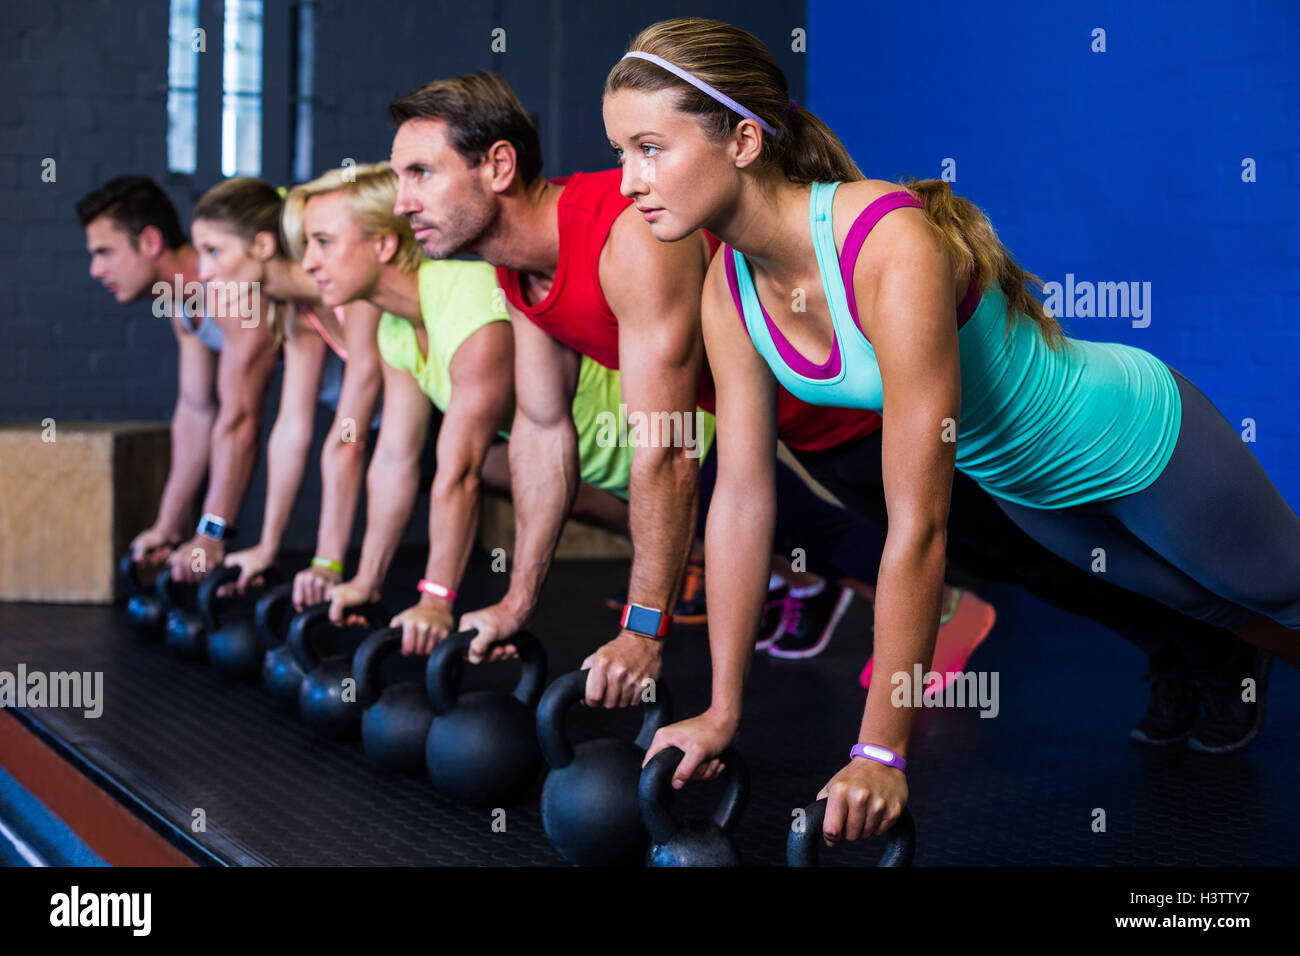 Athletes exercising with kettlebells - Stock Image